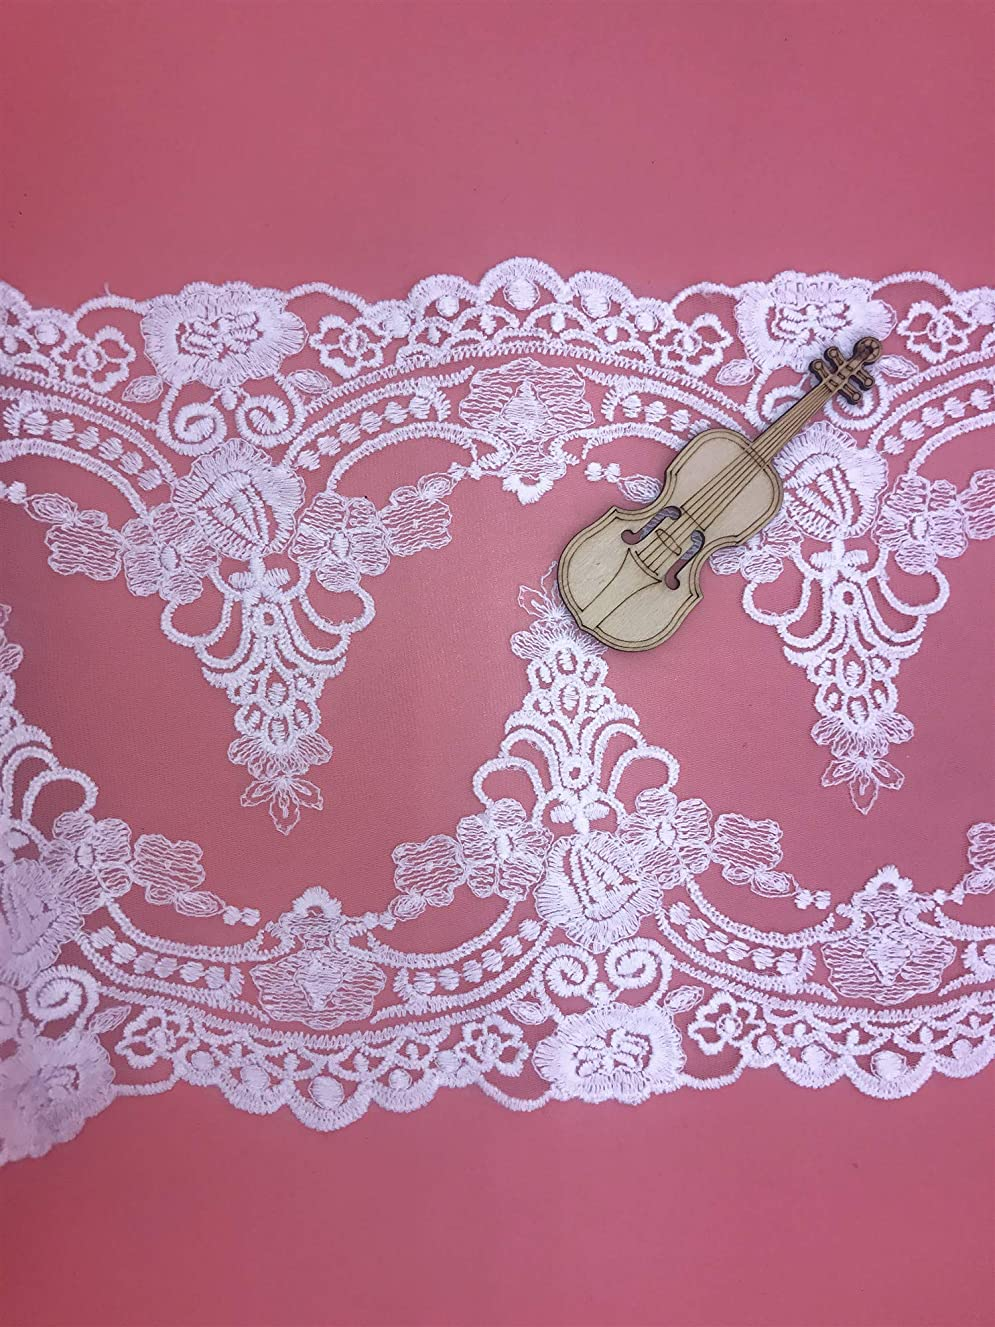 21CM Width Europe Ribbon Wedding Applique Inelastic Embroidery Lace Trim,Curtain Tablecloth Slipcover Bridal DIY Clothing/Accessories.(4 Yards in one Package) (White)